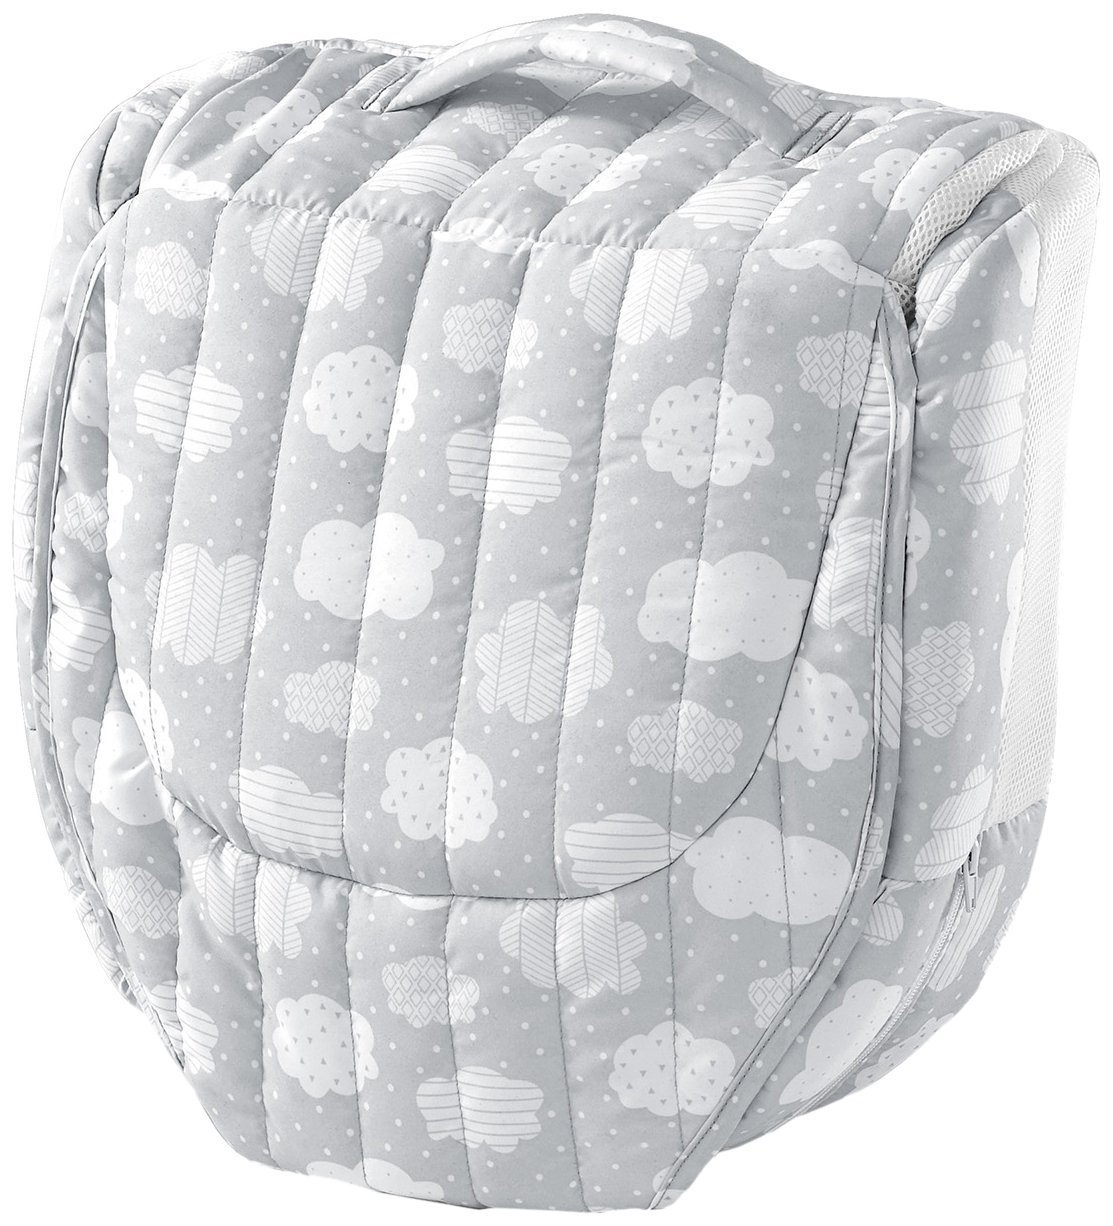 Baby Delight Snuggle Nest Harmony Infant Sleeper/Baby Bed with Incline Wedge | Silver Clouds Fabric Pattern | Portable Bassinet/Co-Sleeper with Sound & Light Unit | Waterproof Foam Mattress w/Sheet